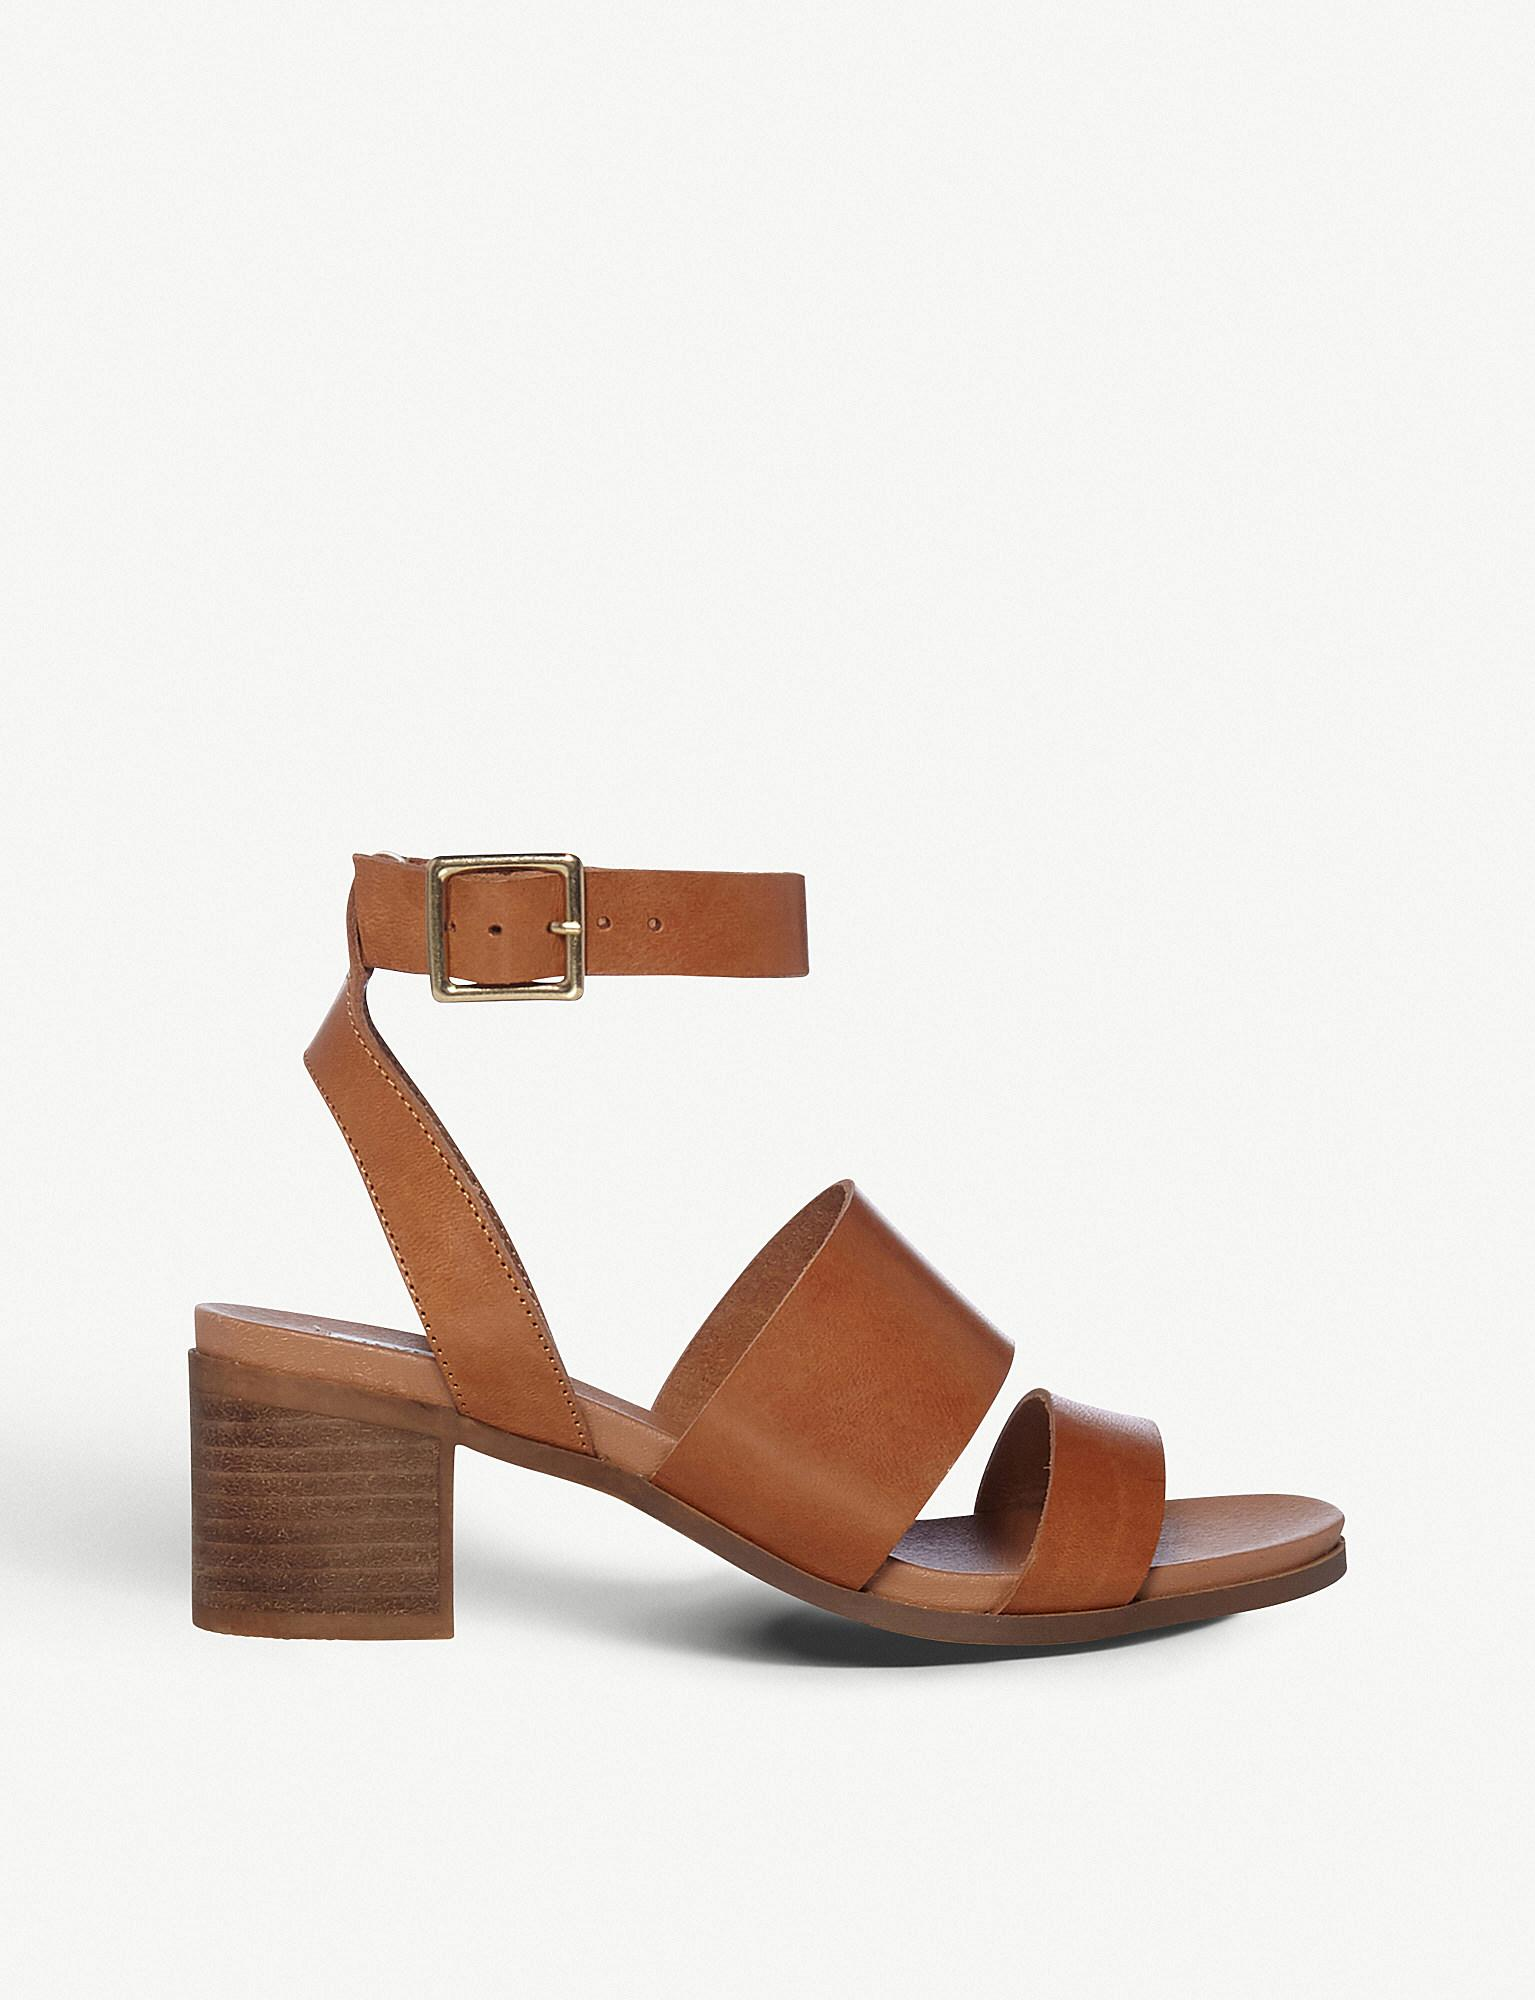 3553d458333 Steve Madden Alex Open-toe Leather Heeled Sandals in Brown - Lyst